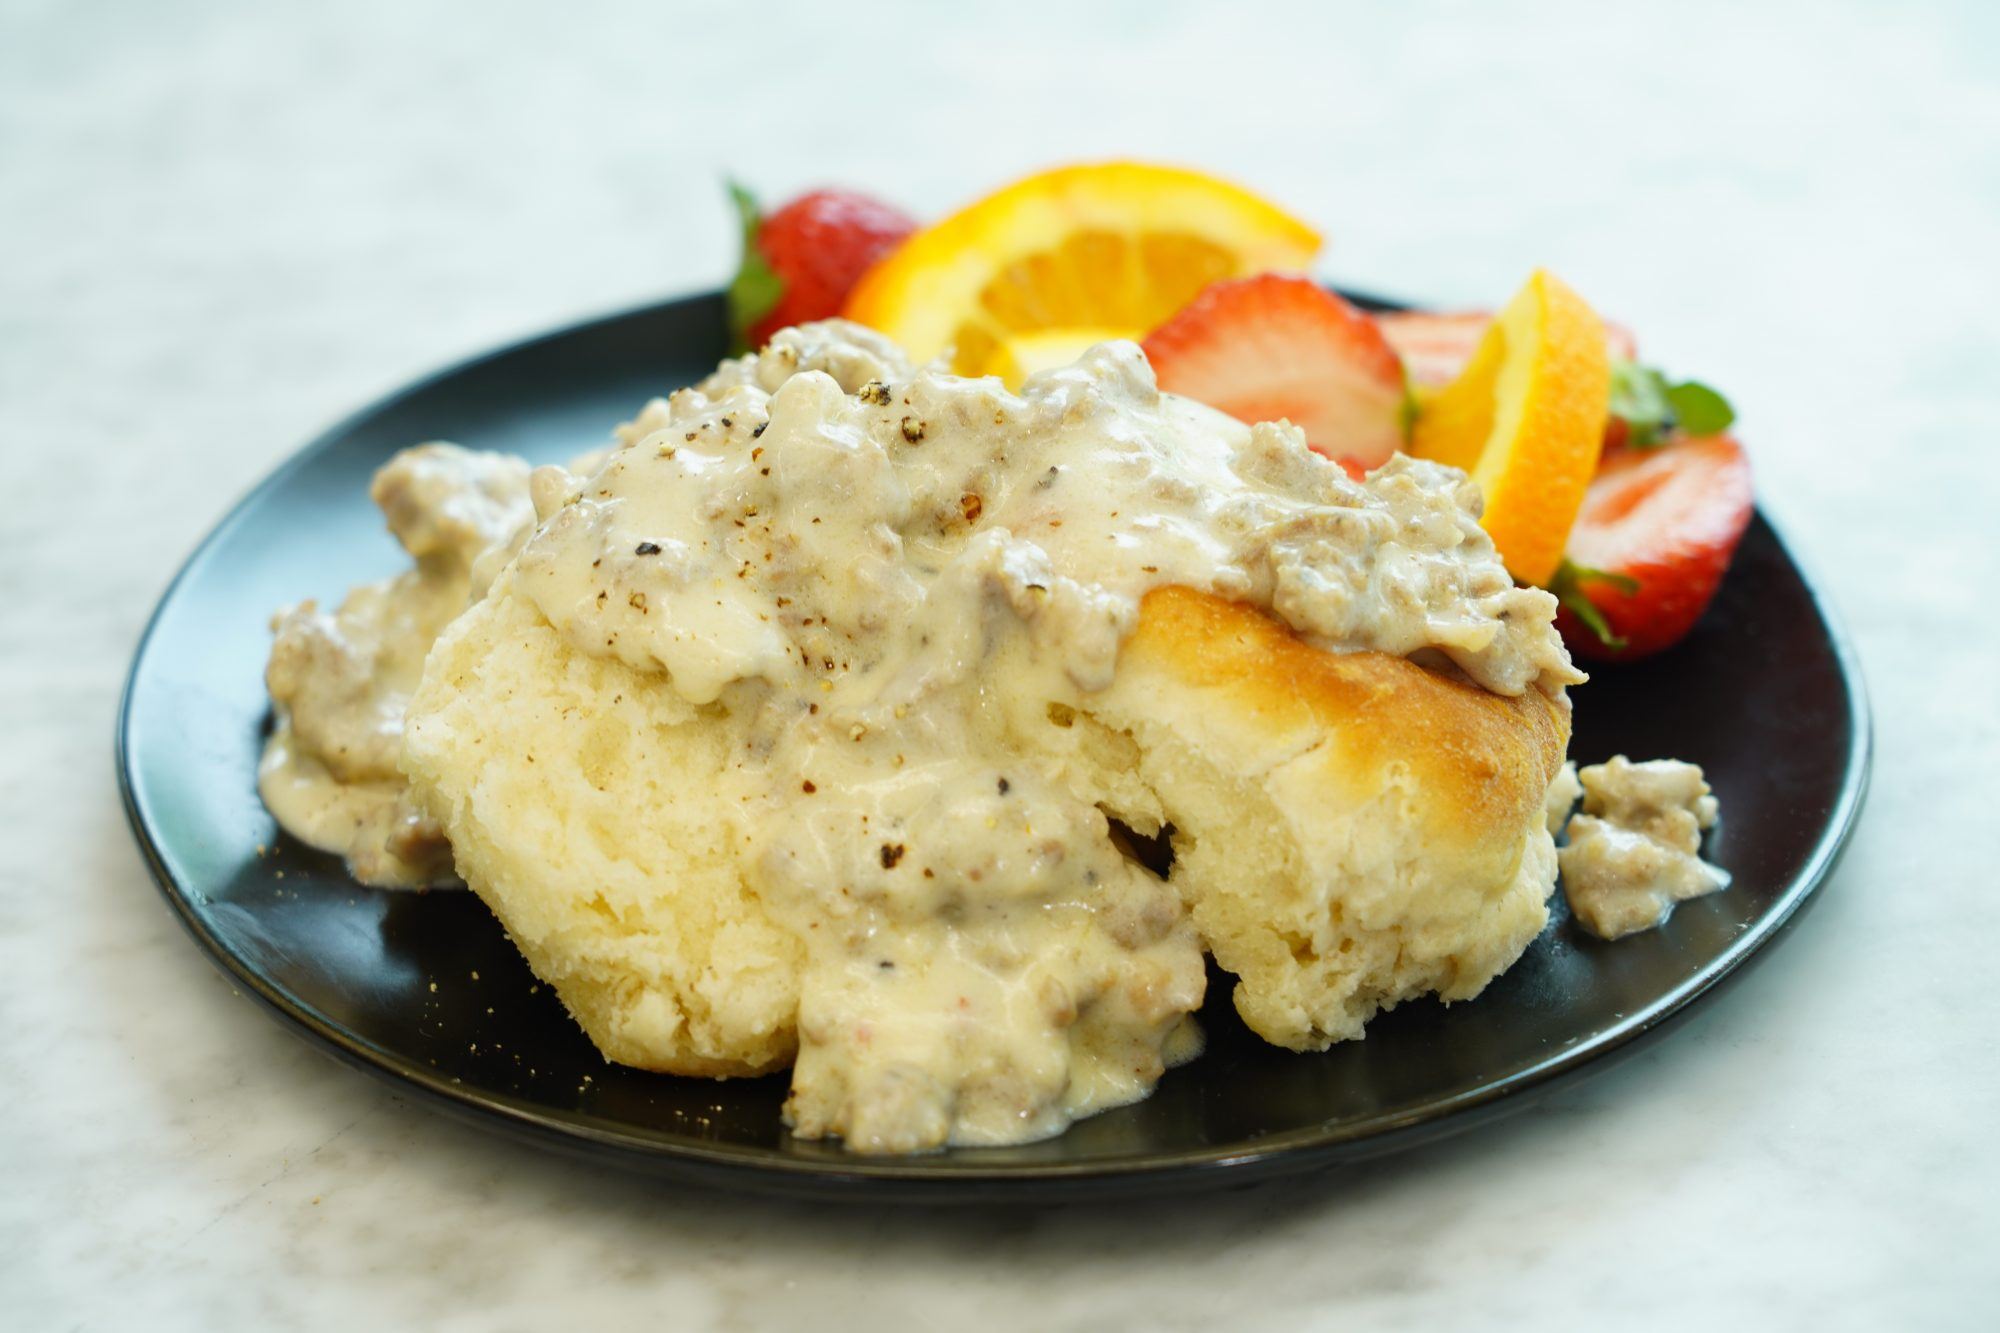 plate of creamy sausage gravy served over open-face biscuits with fruit on the side